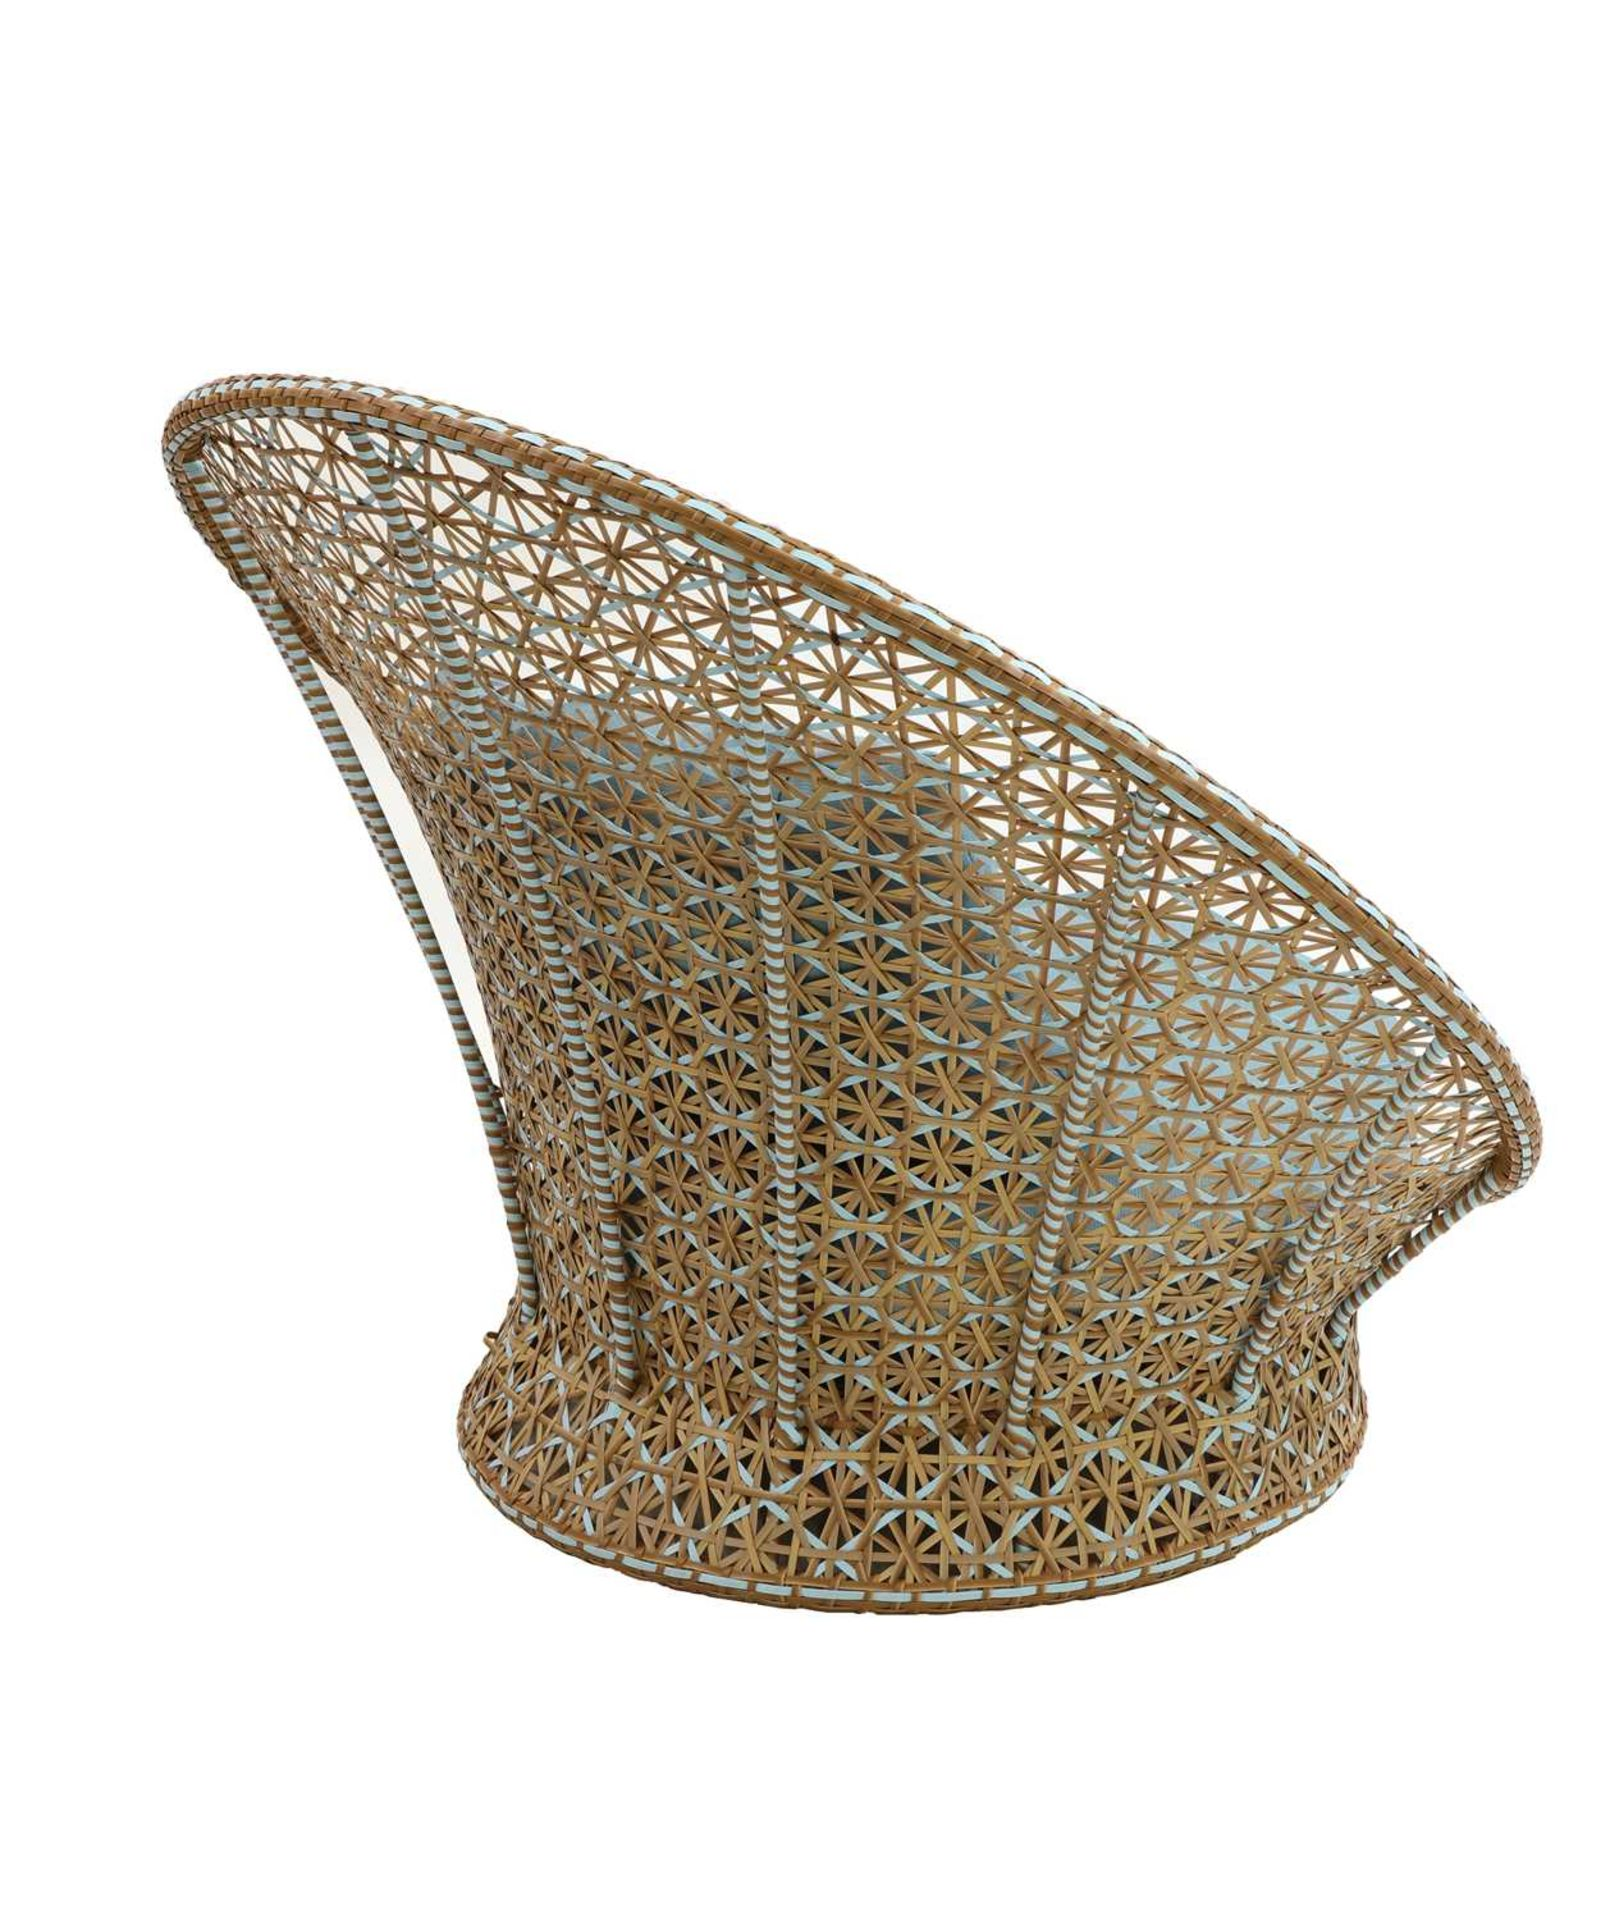 A 'peacock' chair, - Image 4 of 4